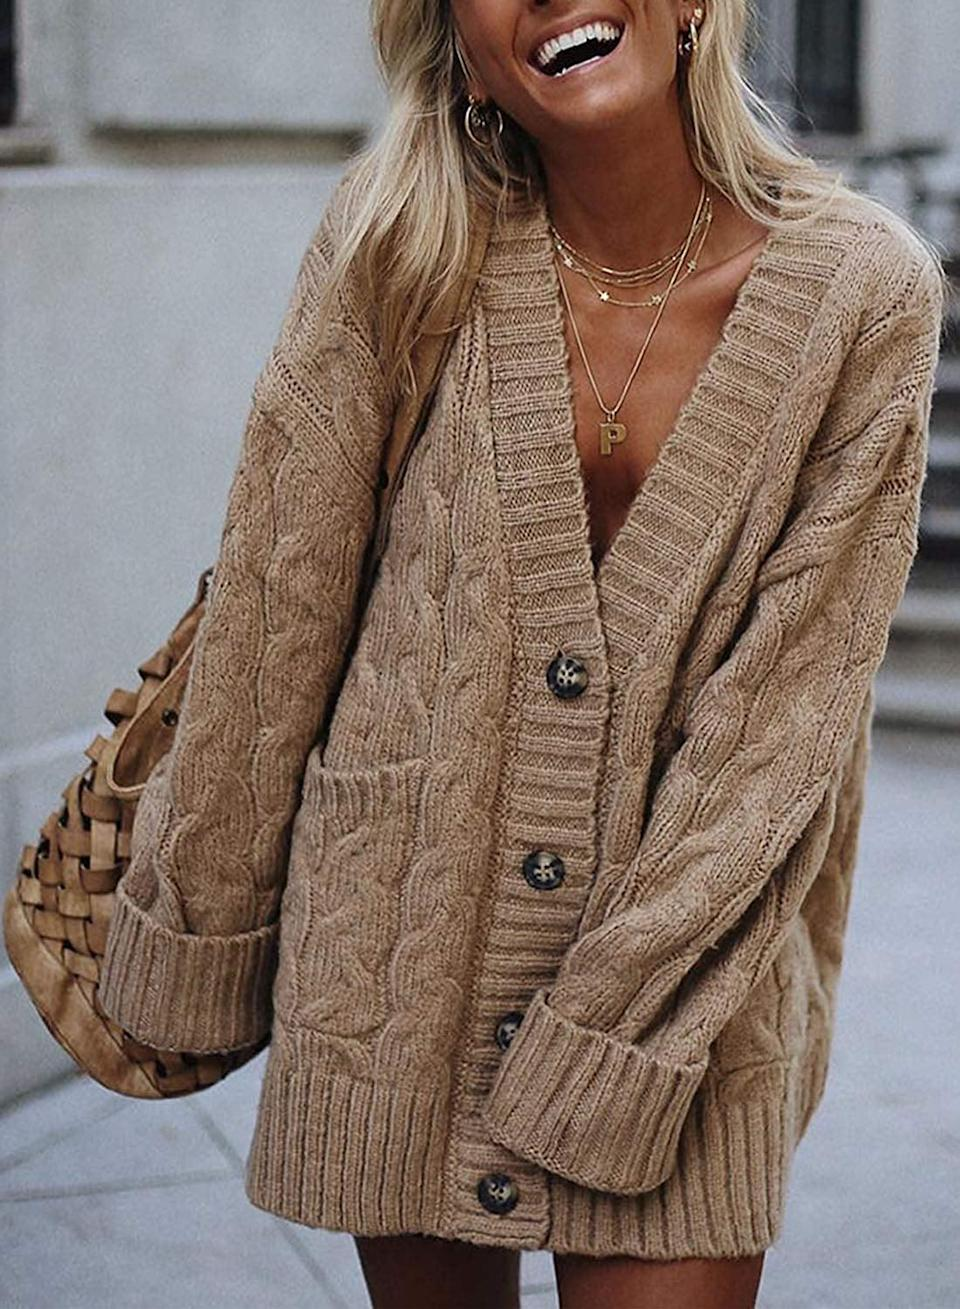 """<p>This classic <a href=""""https://www.popsugar.com/buy/Sidefeel-Cardigan-Sweater-522520?p_name=Sidefeel%20Cardigan%20Sweater&retailer=amazon.com&pid=522520&price=34&evar1=fab%3Aus&evar9=46936276&evar98=https%3A%2F%2Fwww.popsugar.com%2Ffashion%2Fphoto-gallery%2F46936276%2Fimage%2F46936780%2FSidefeel-Cardigan-Sweater&list1=shopping%2Camazon%2Cwinter%20fashion&prop13=api&pdata=1"""" rel=""""nofollow noopener"""" class=""""link rapid-noclick-resp"""" target=""""_blank"""" data-ylk=""""slk:Sidefeel Cardigan Sweater"""">Sidefeel Cardigan Sweater </a> ($34) comes in tons of colors.</p>"""